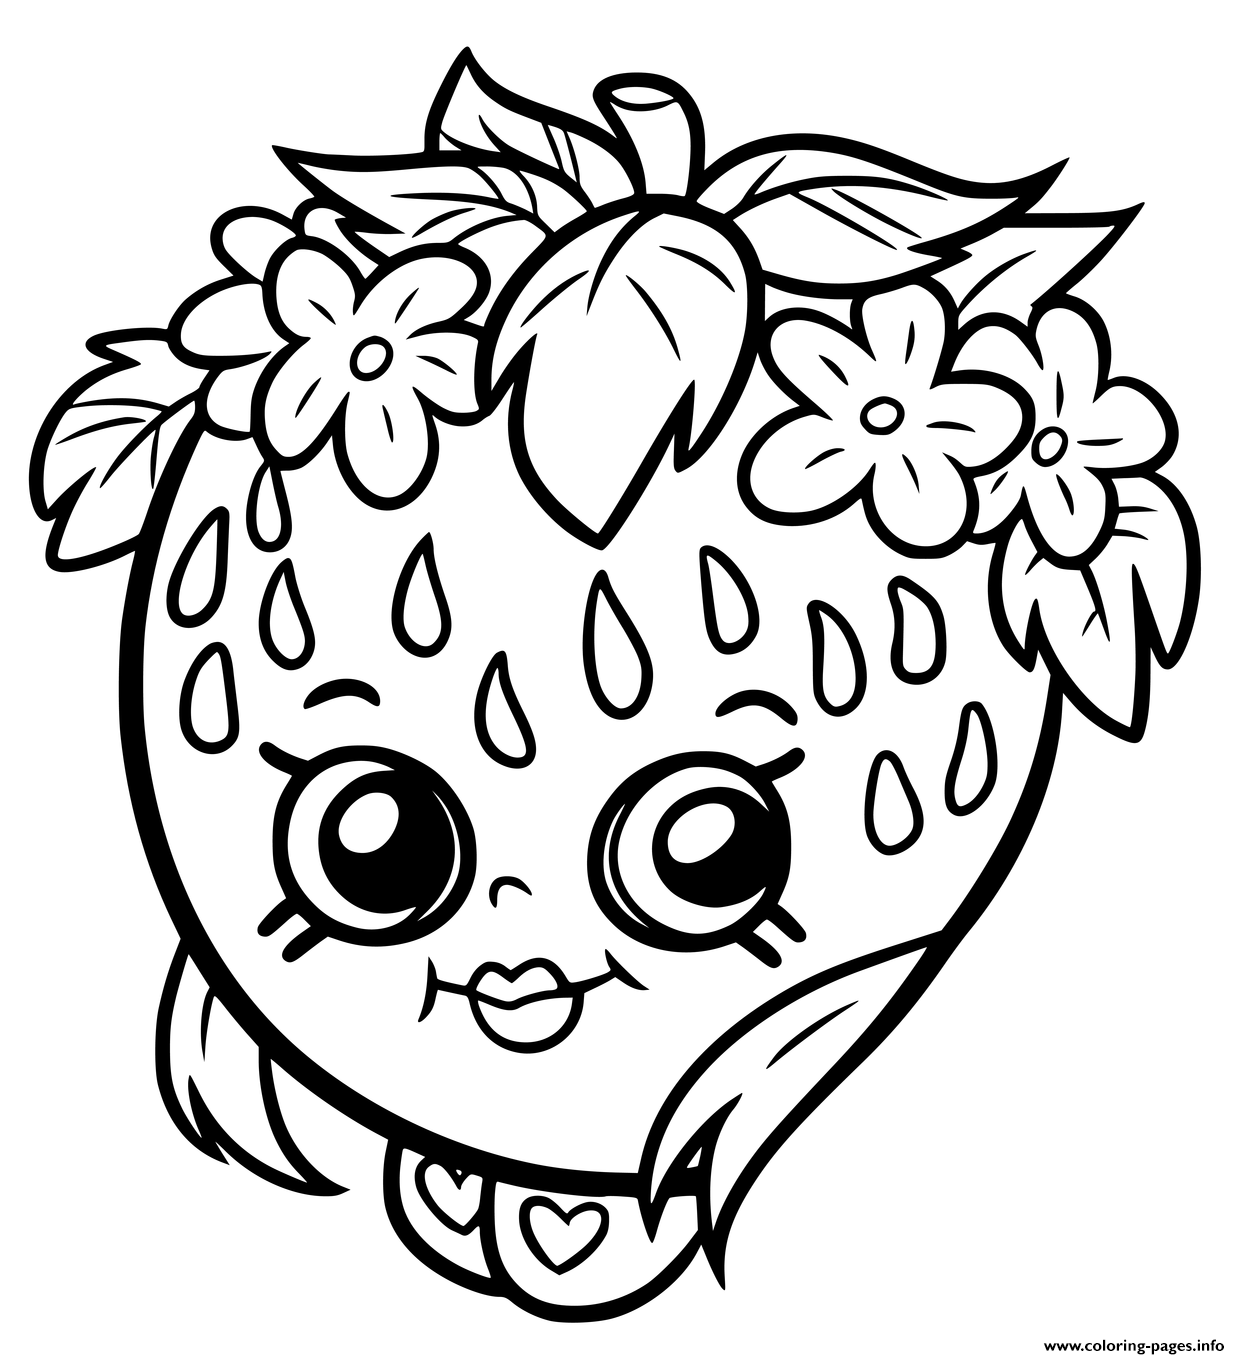 shopkins coloring pages to print free shopkins coloring pages best coloring pages for kids pages coloring to free shopkins print